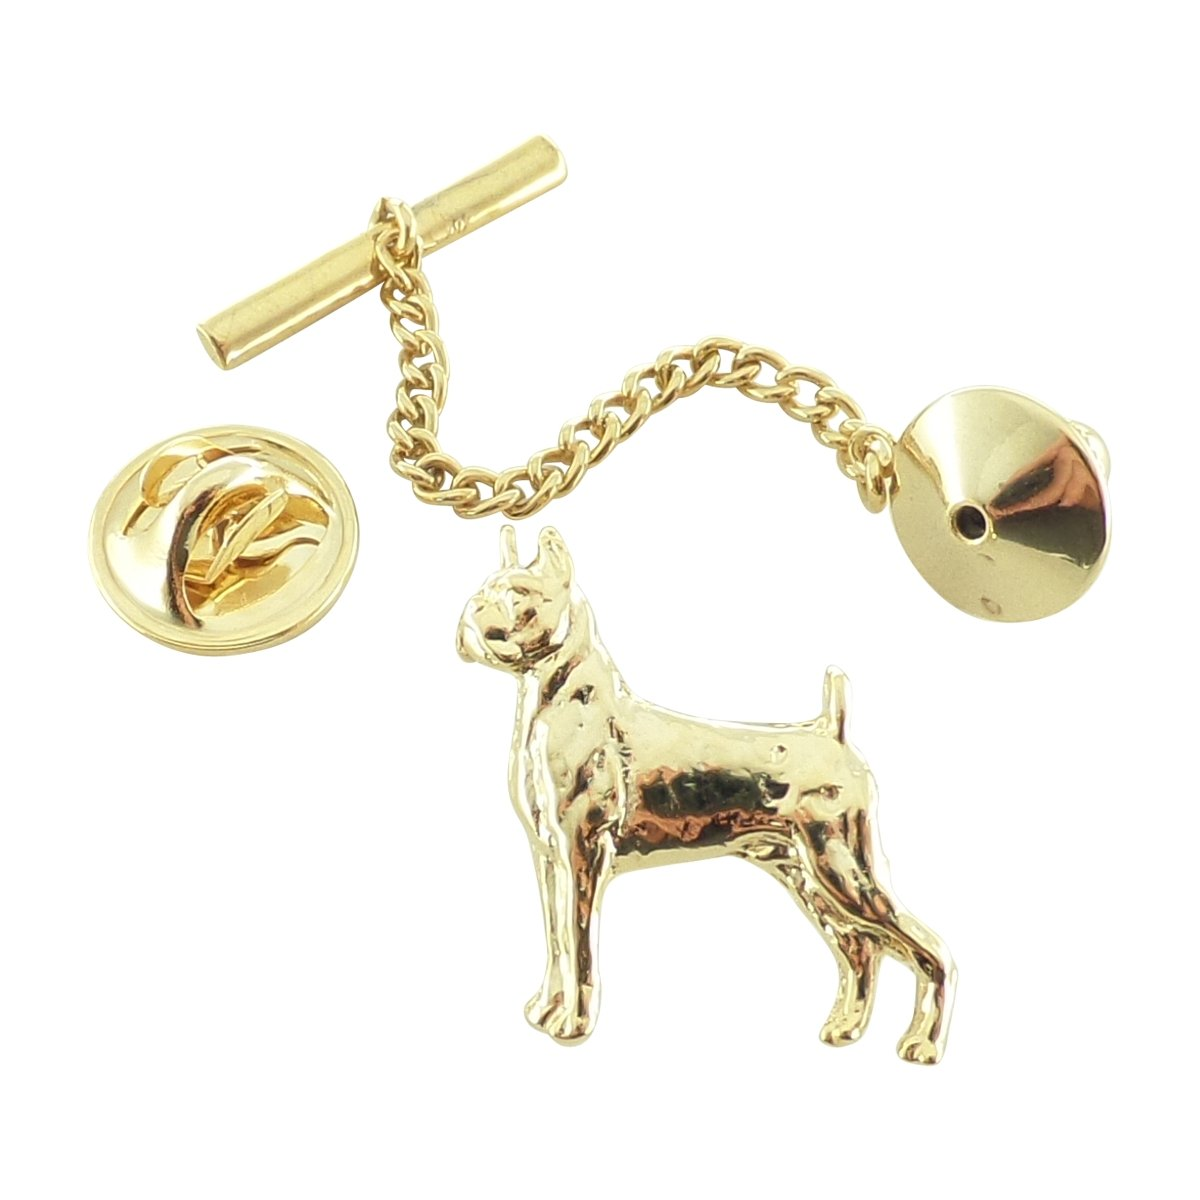 Creative Pewter Designs Pewter Boxer Tie Tack, Gold Plated, DG336TT